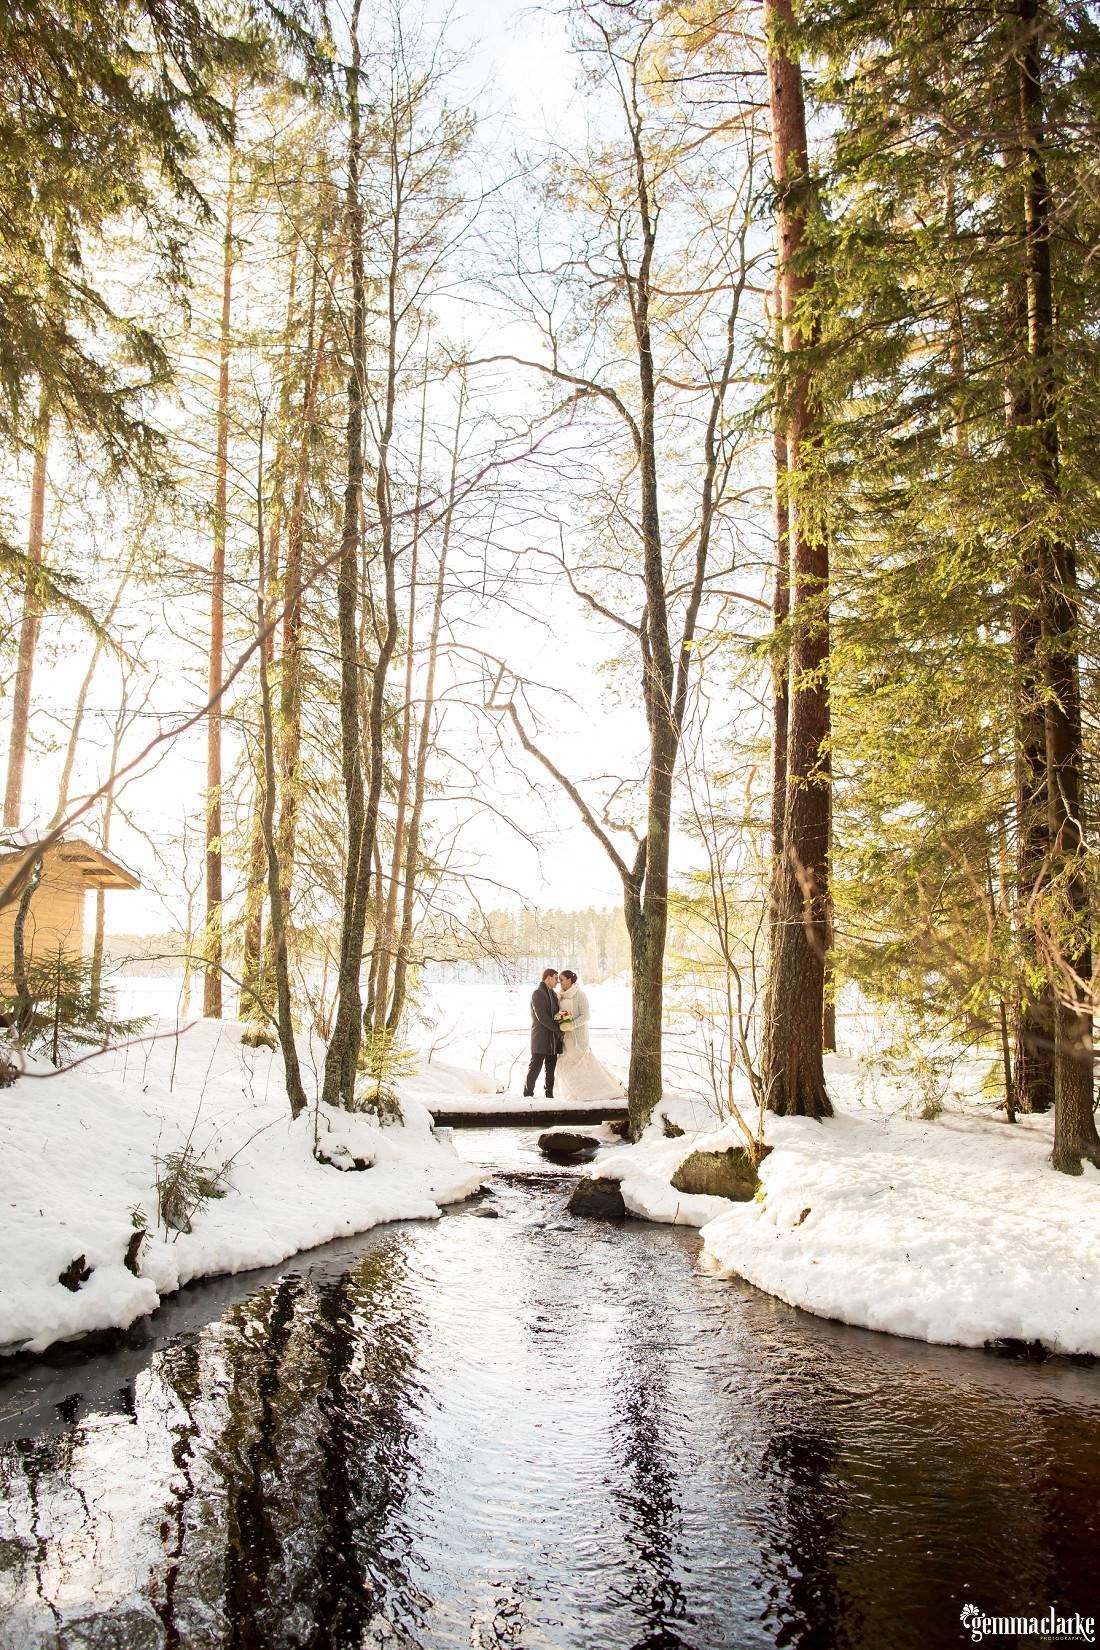 A bride and groom stand on a bridge over a small river in a snowy forest